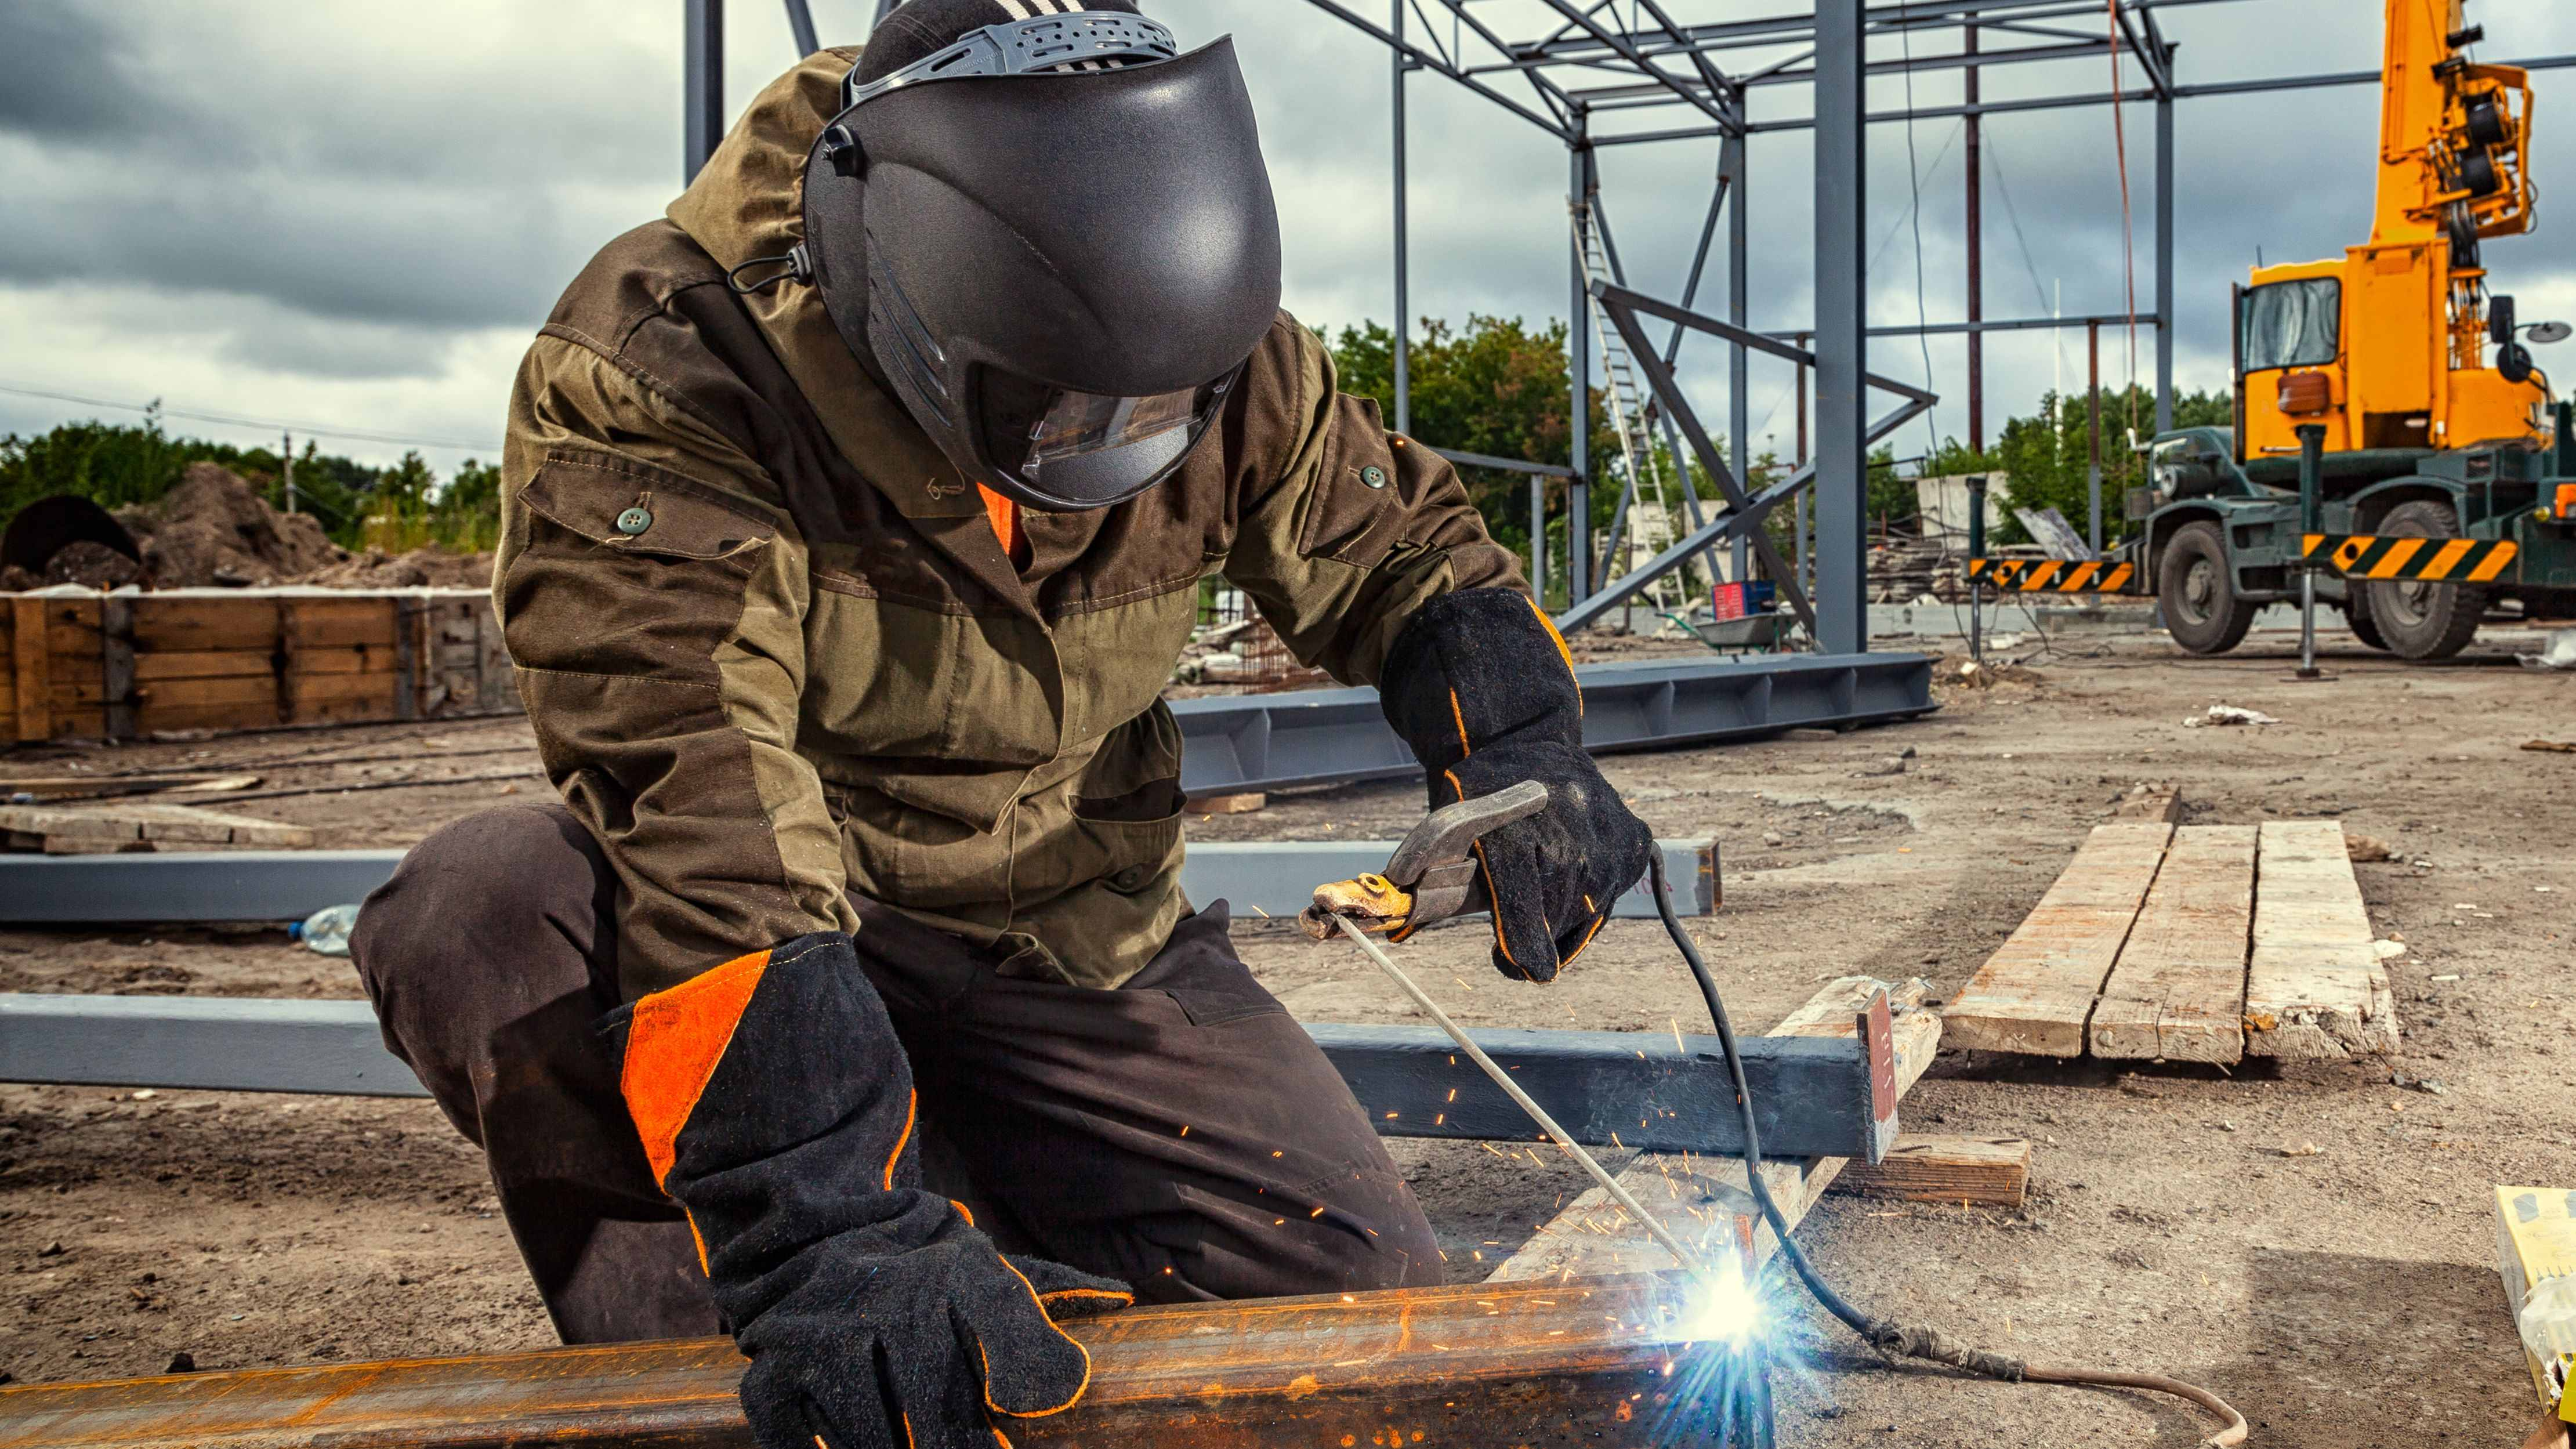 Welding tools and protective gear buying guide